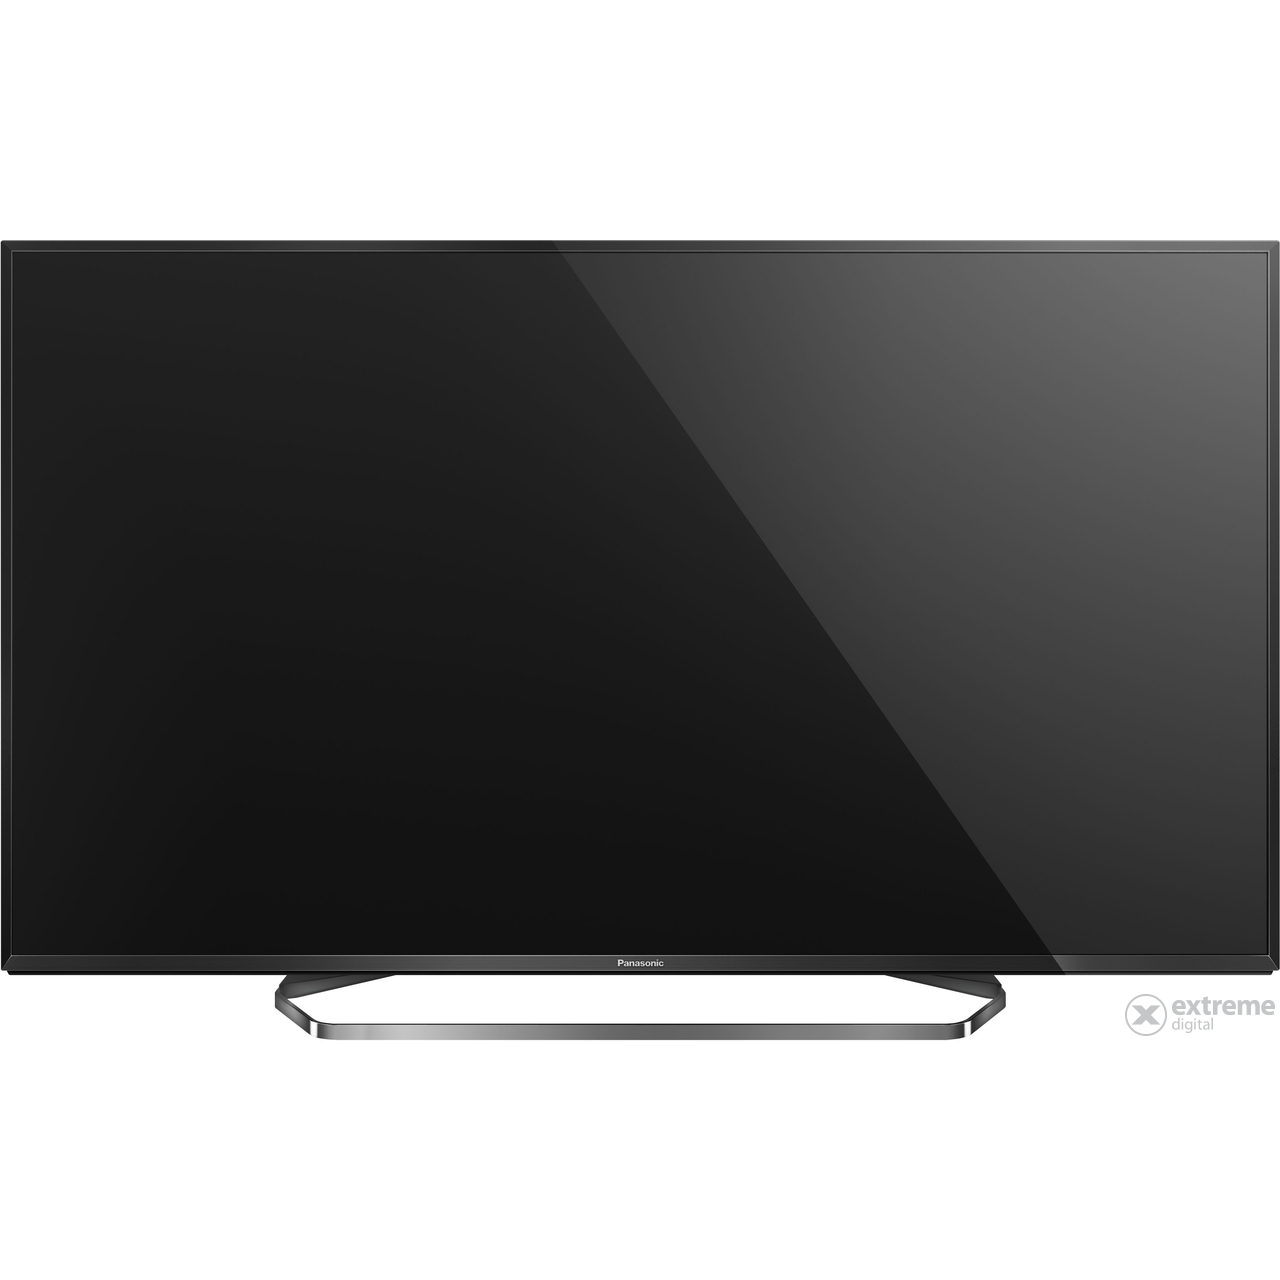 panasonic-tx-49cx750e-uhd-3d-smart-led-televizio_8dbc189a.jpg